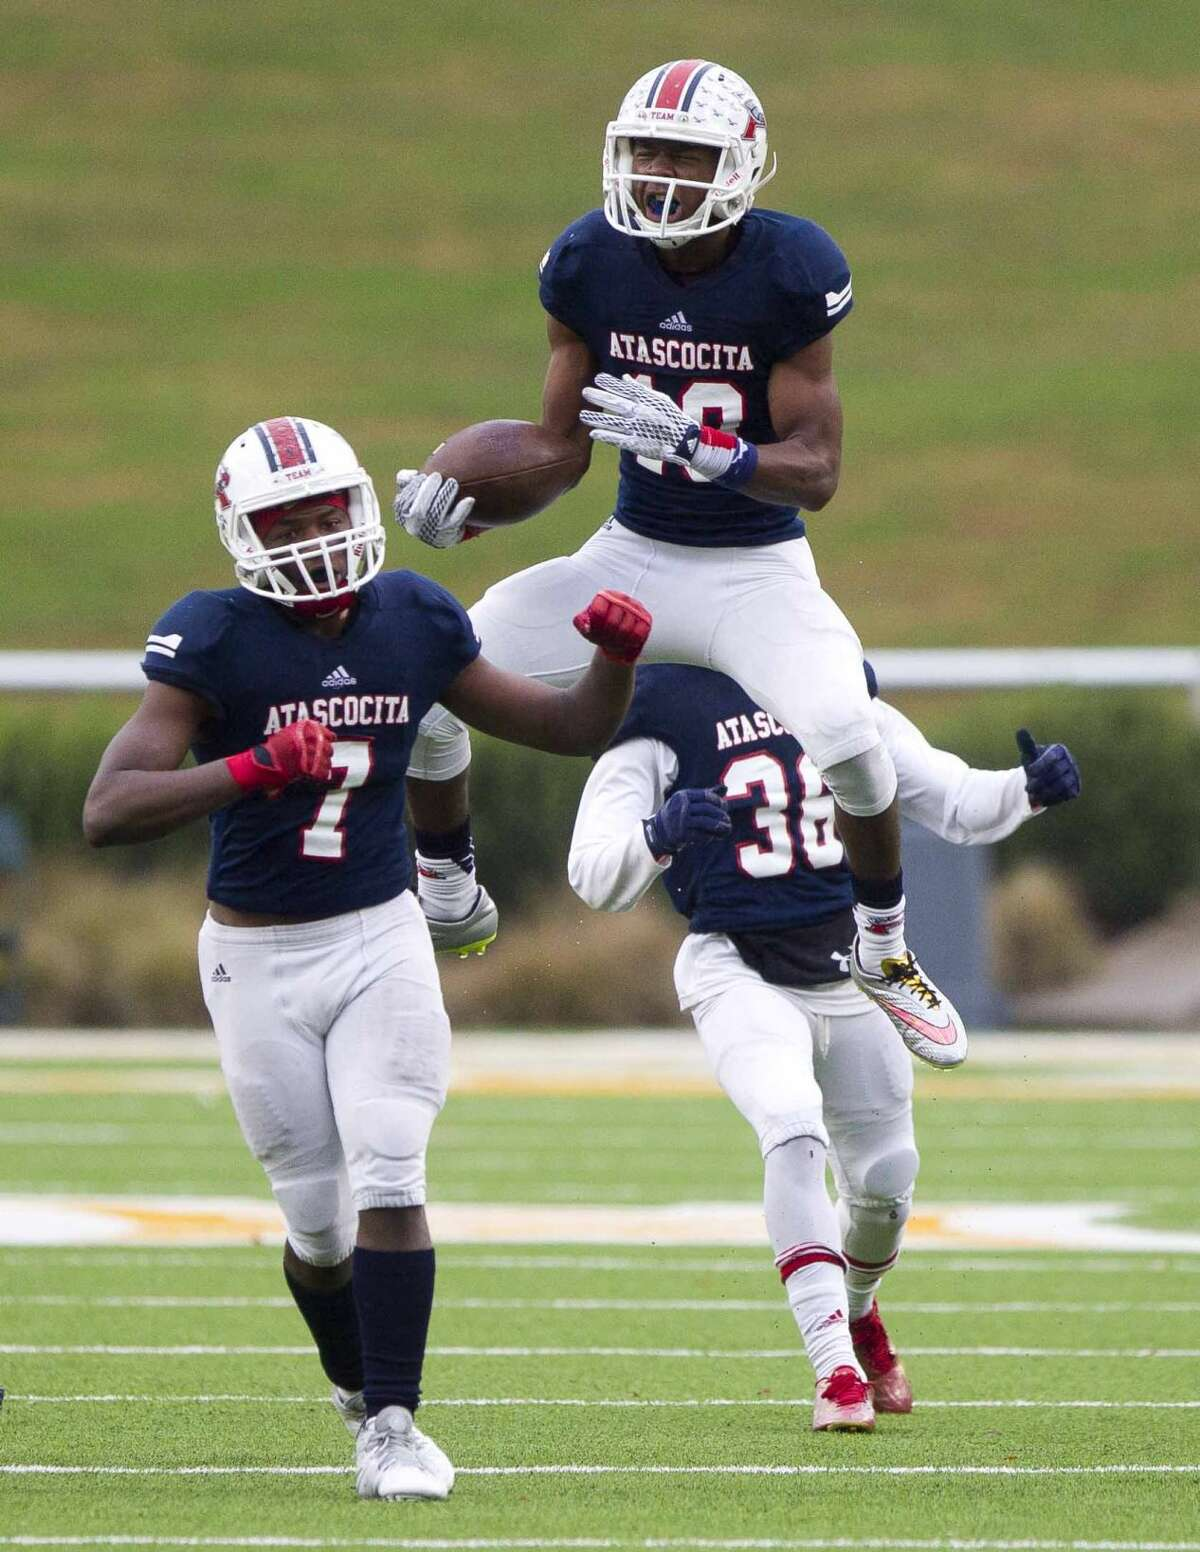 Atascocita defensive back Justen Campbell celebrates after intercepting a pass by Rowlett quarterback Logan Bonner during the third quarter of a Class 6A-DI Region II regional playoff game Saturday, Nov. 28, 2015, in Waco. Go to HCNpics.com to view more photos from the game.